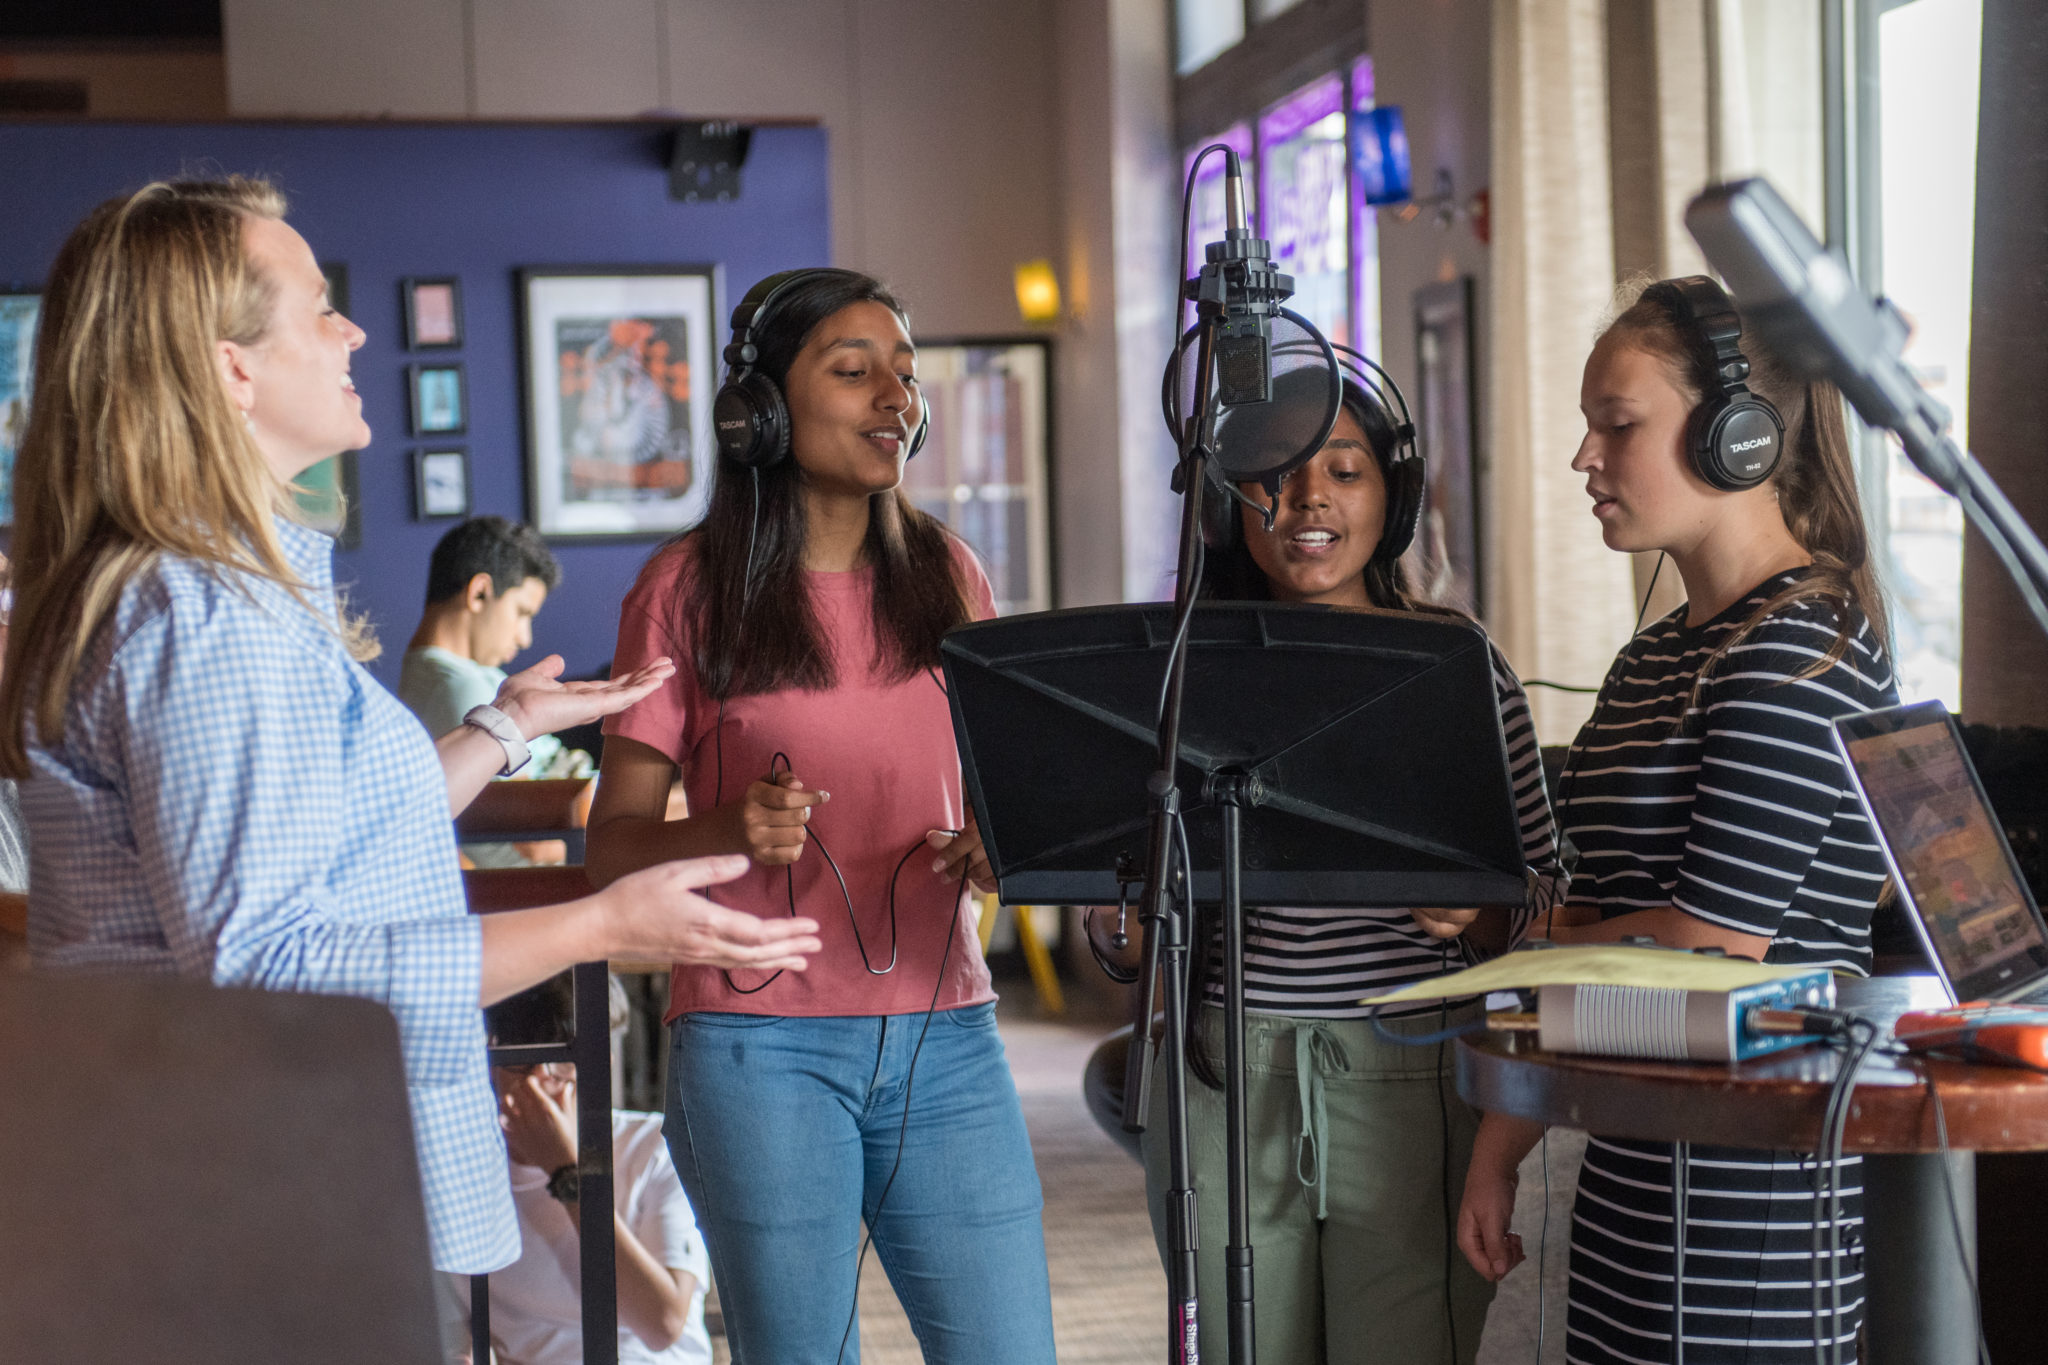 Teaching artist Blair Bodine stands to the left, leading three students to the right in recording a song. The students are wearing over the ear headphones and singing to a recording microphone.